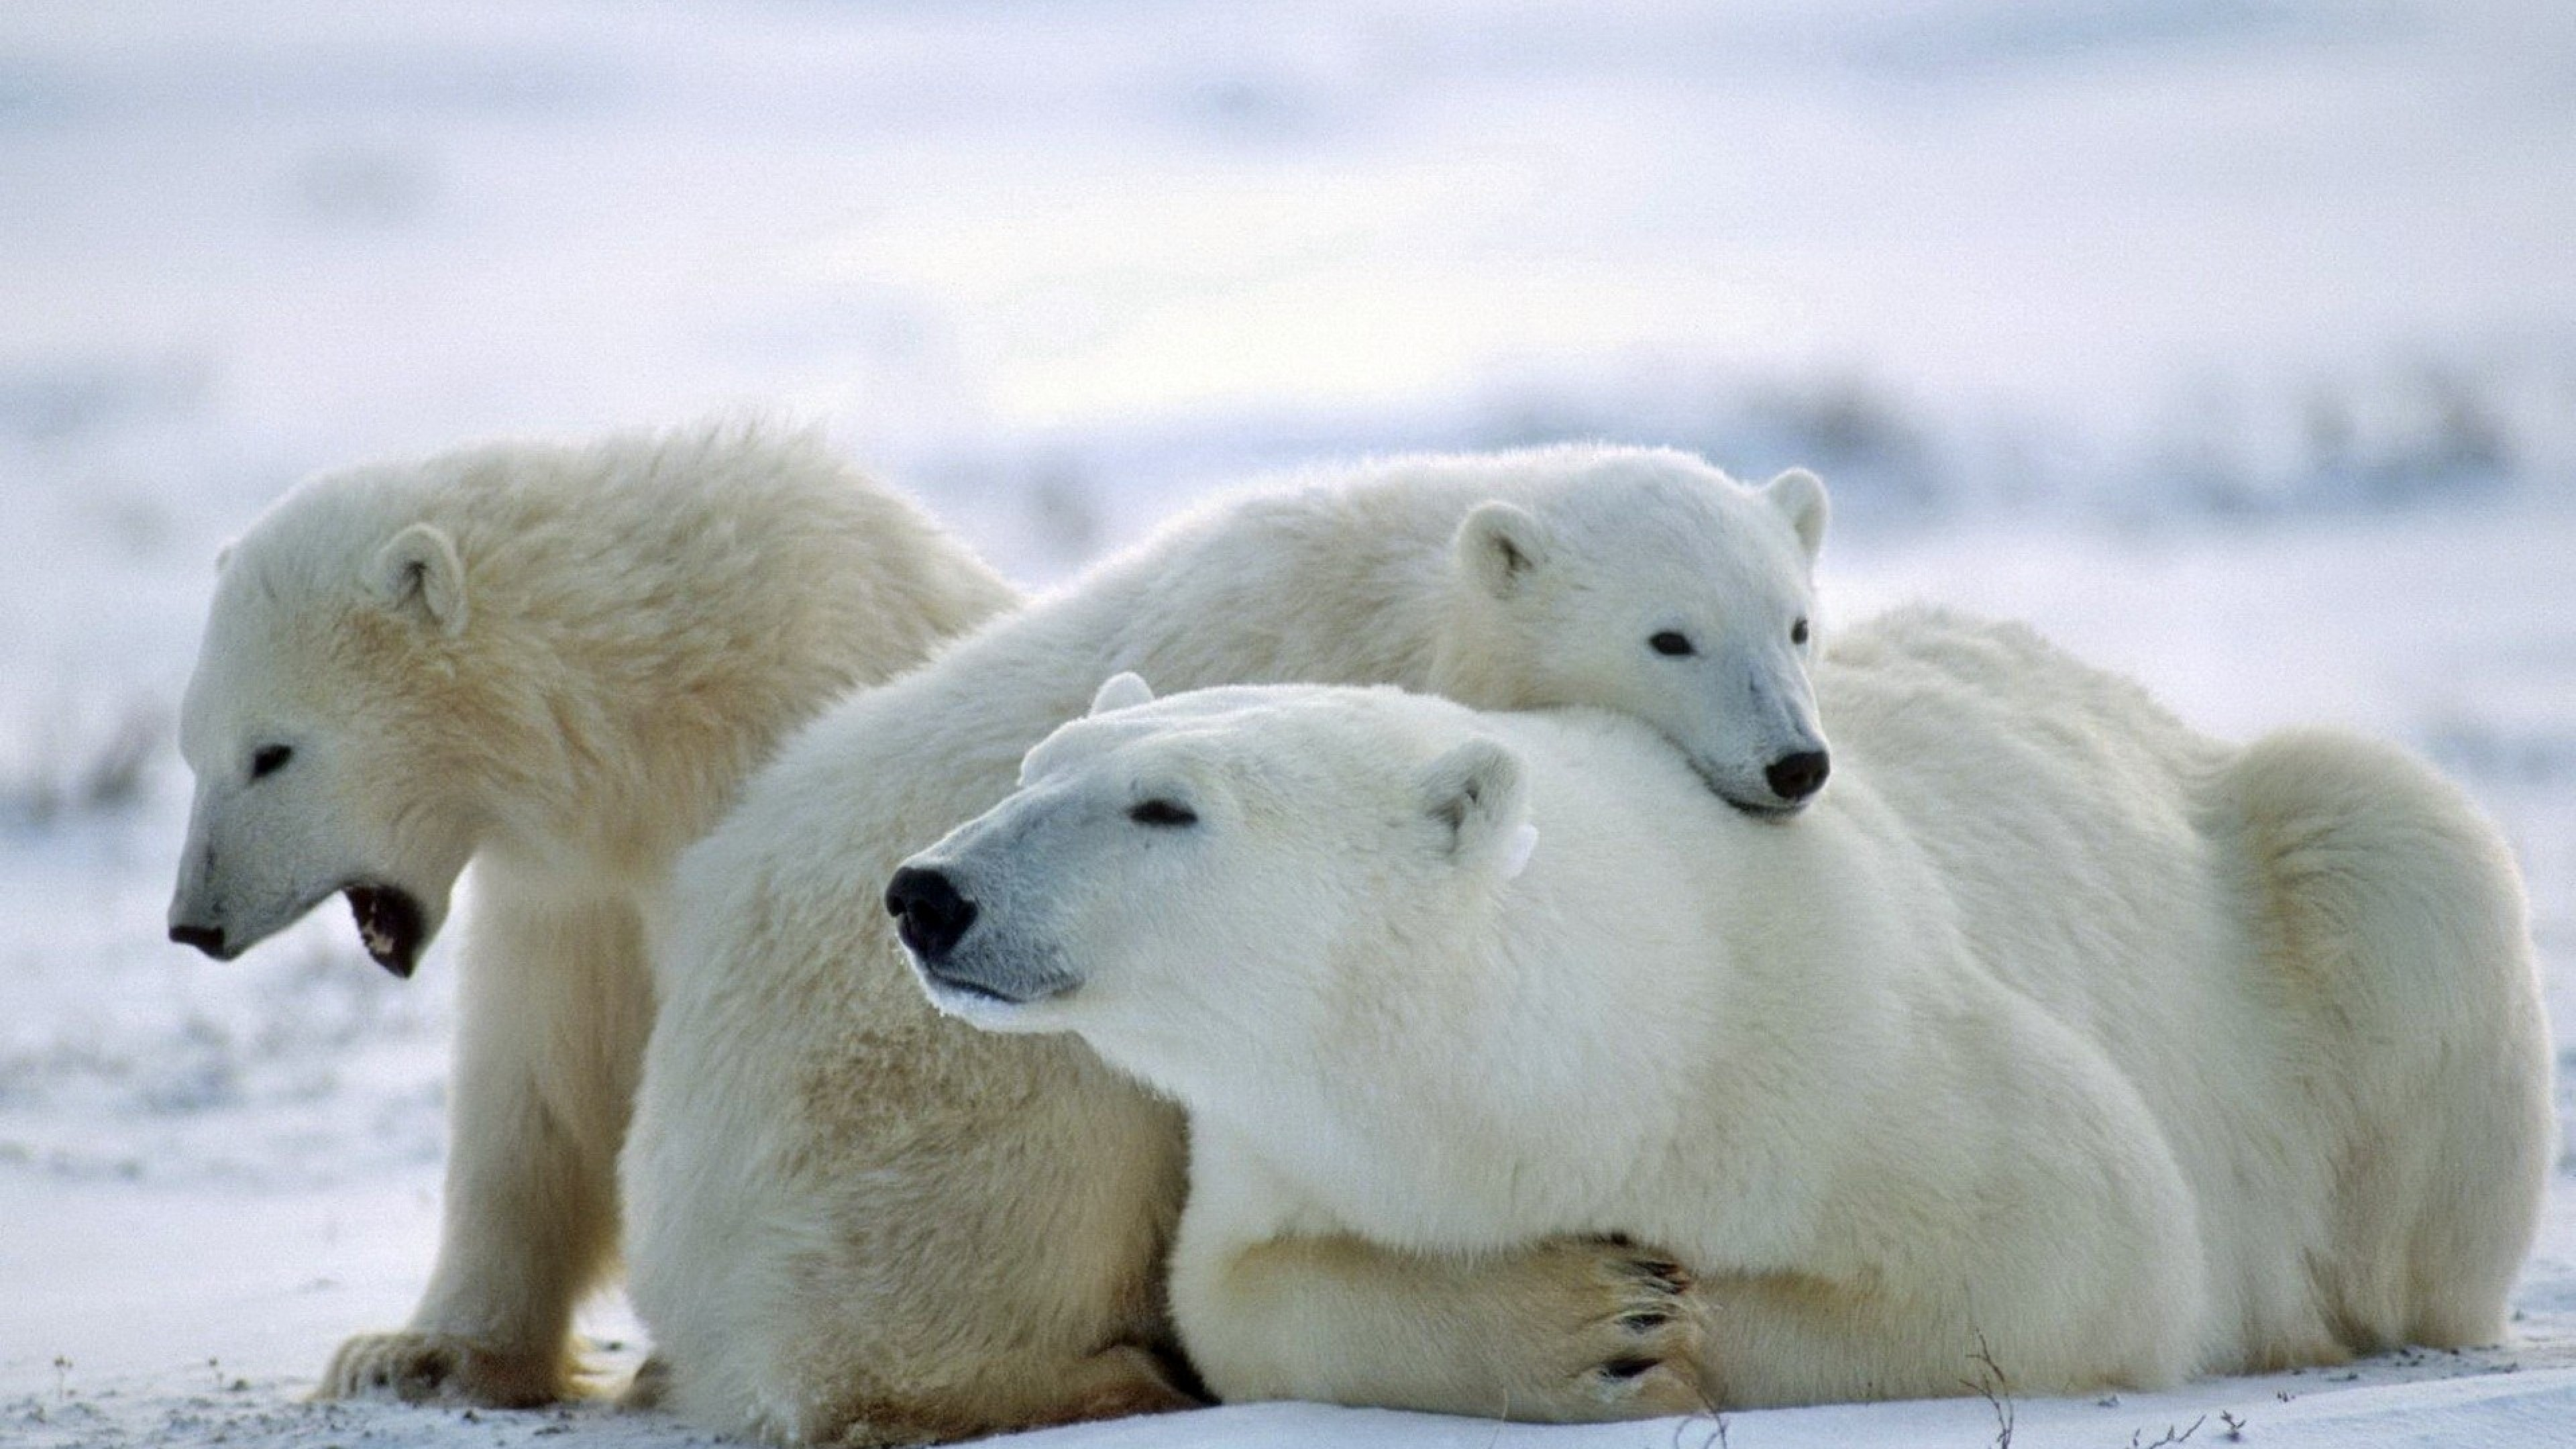 3840x2160  Wallpaper bear, polar bear, family, care, snow